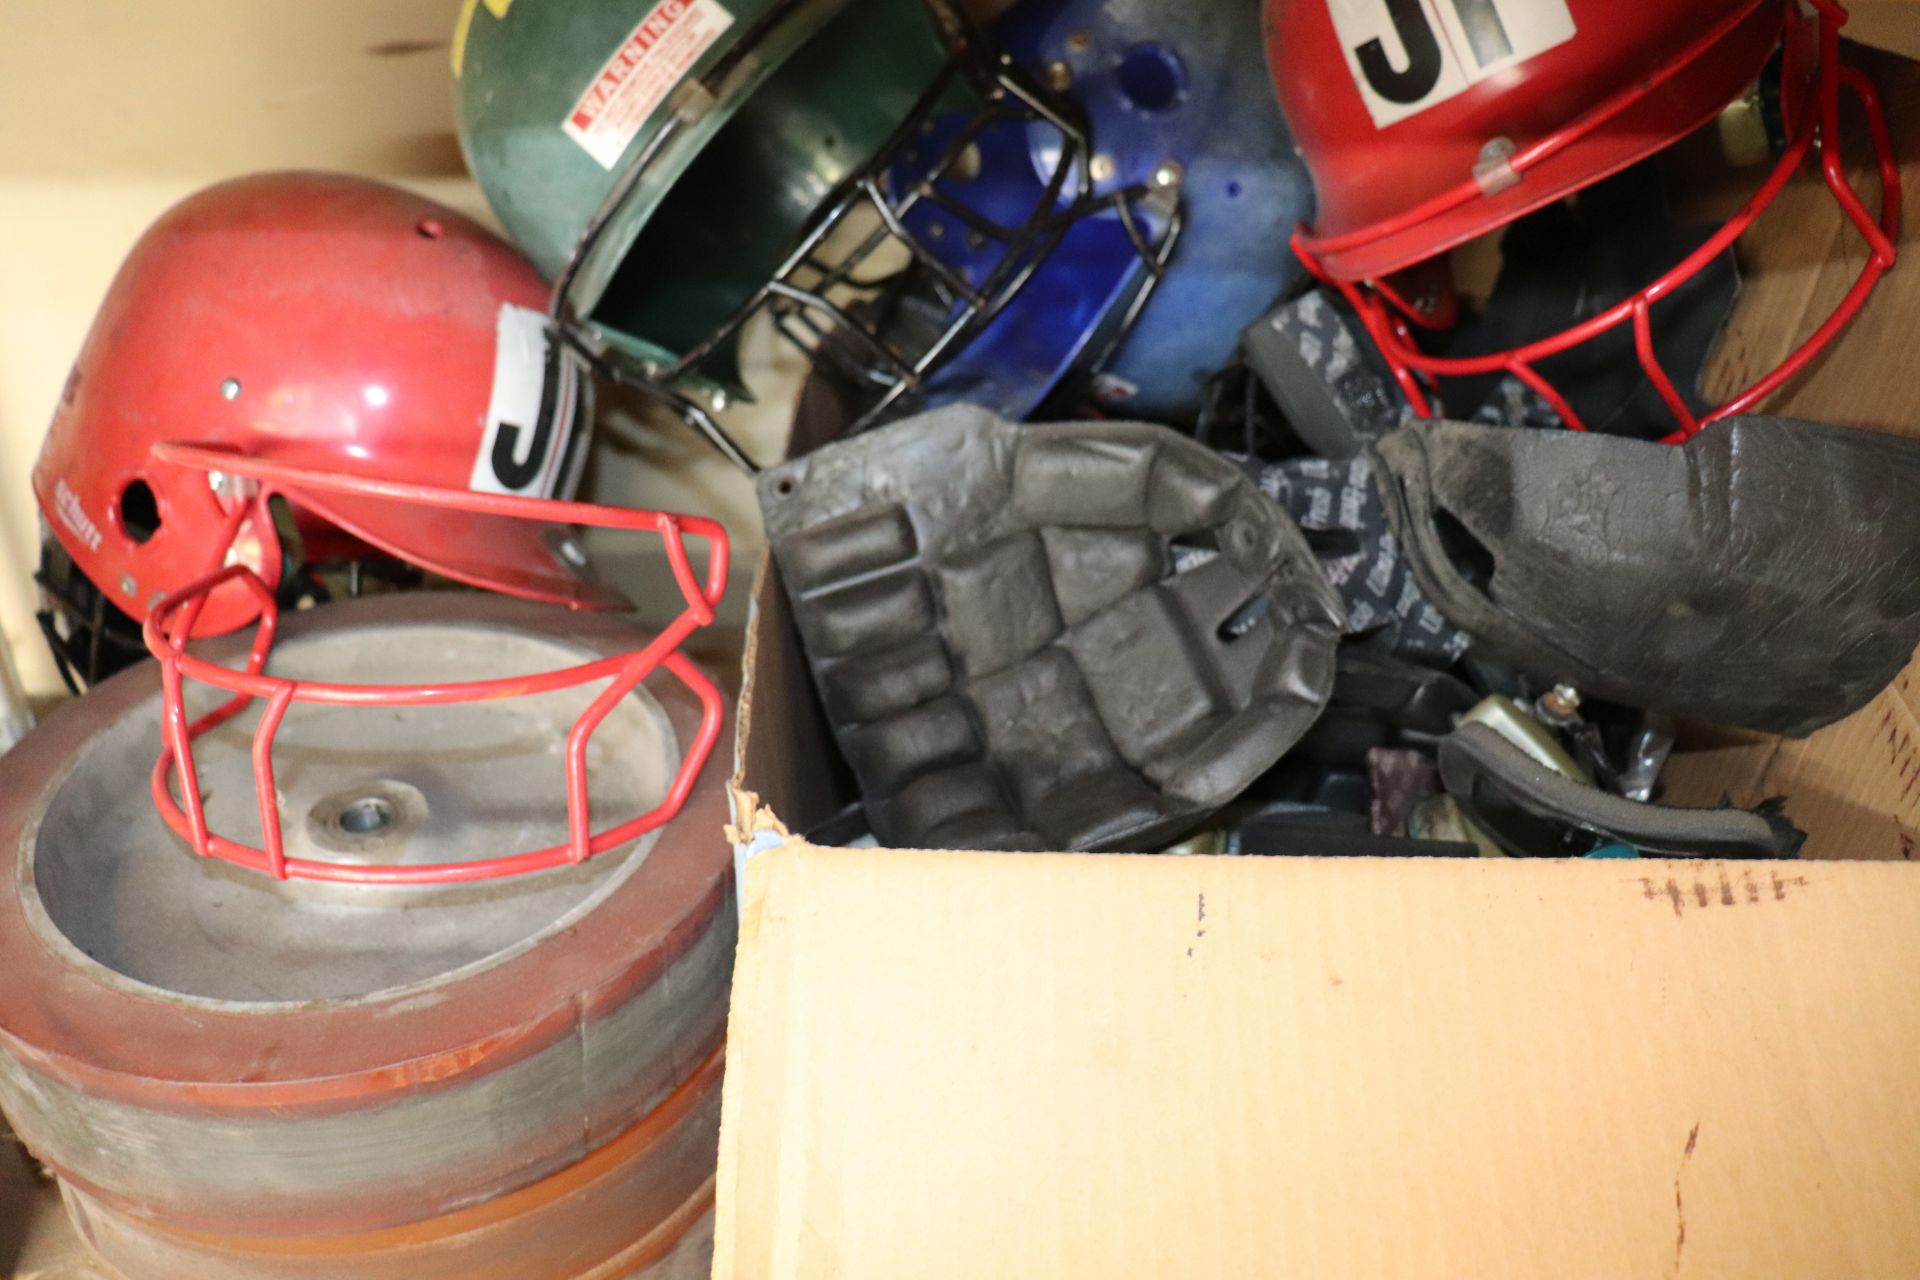 Miscellaneous ABC automatic batting cage parts including token mechs, vibration bearings, motor shaf